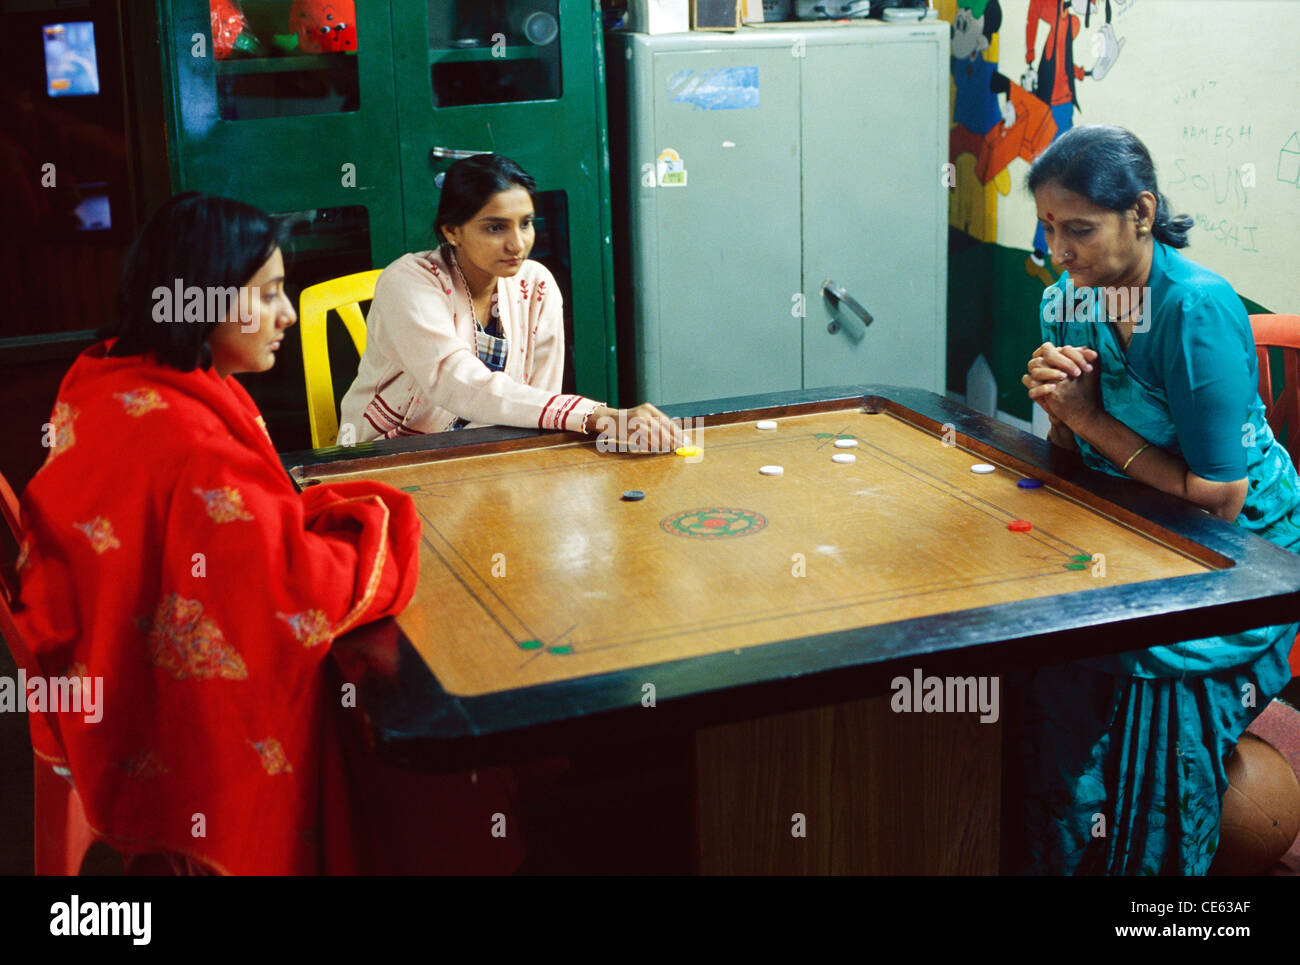 Indian Family Playing Carrom Game Stock Photos & Indian